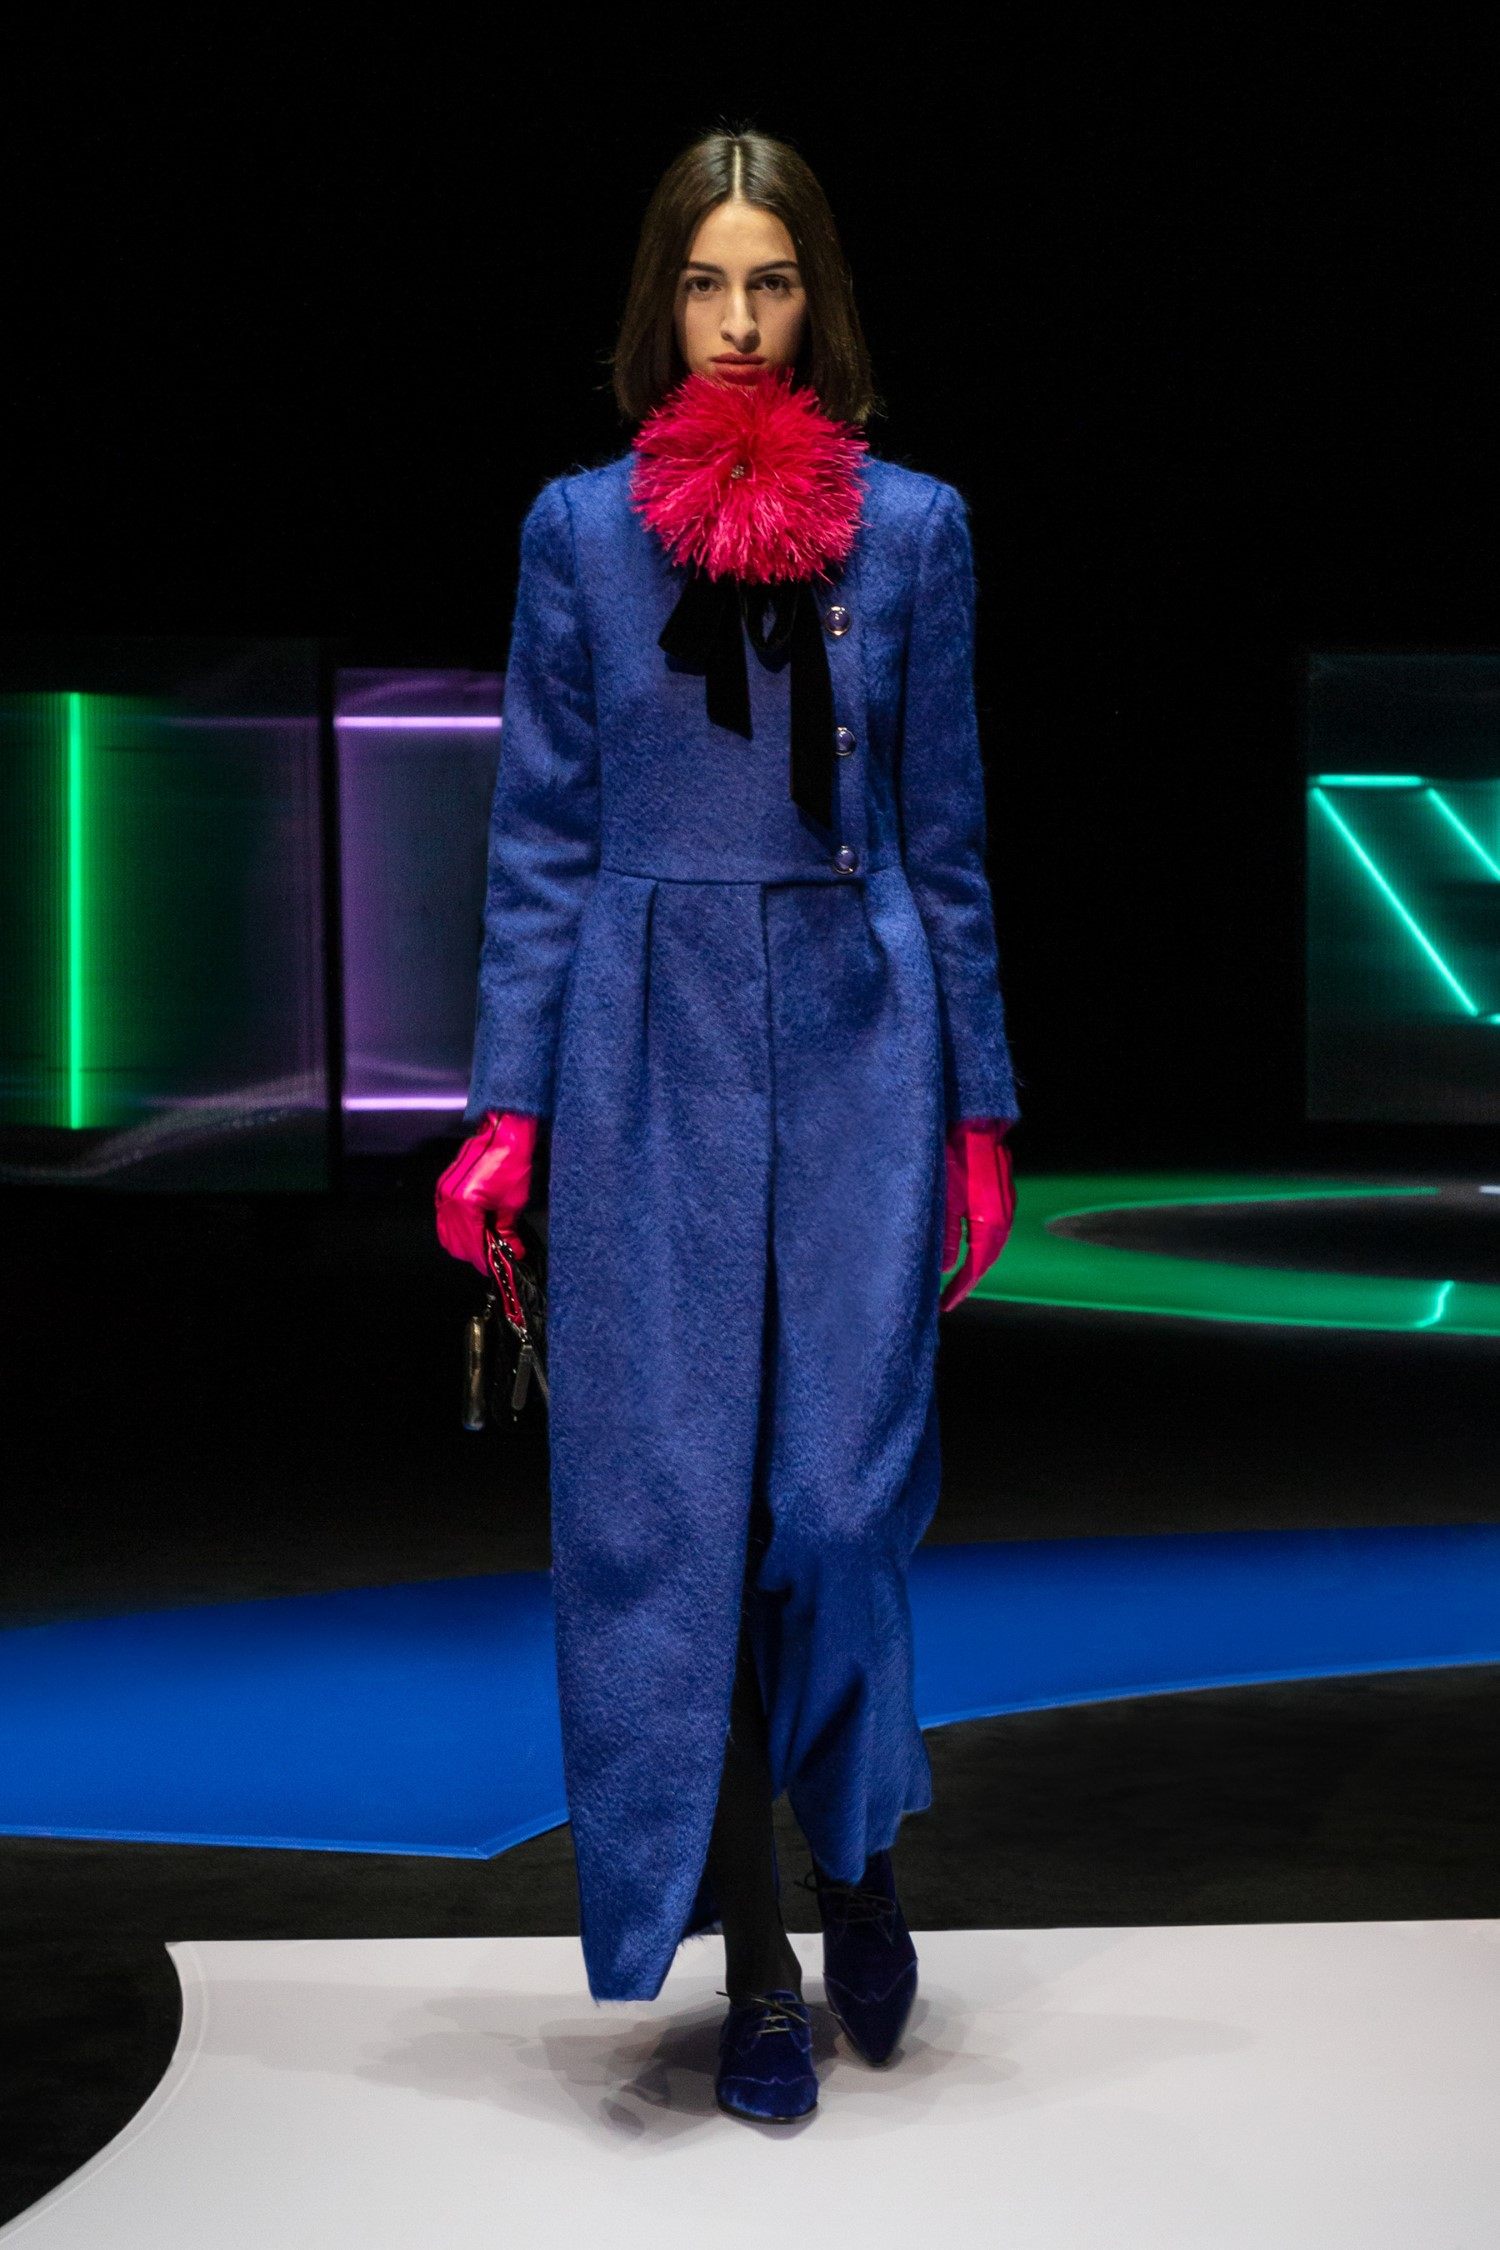 Emporio Armani Fall Winter 2021 - Milan Fashion Week